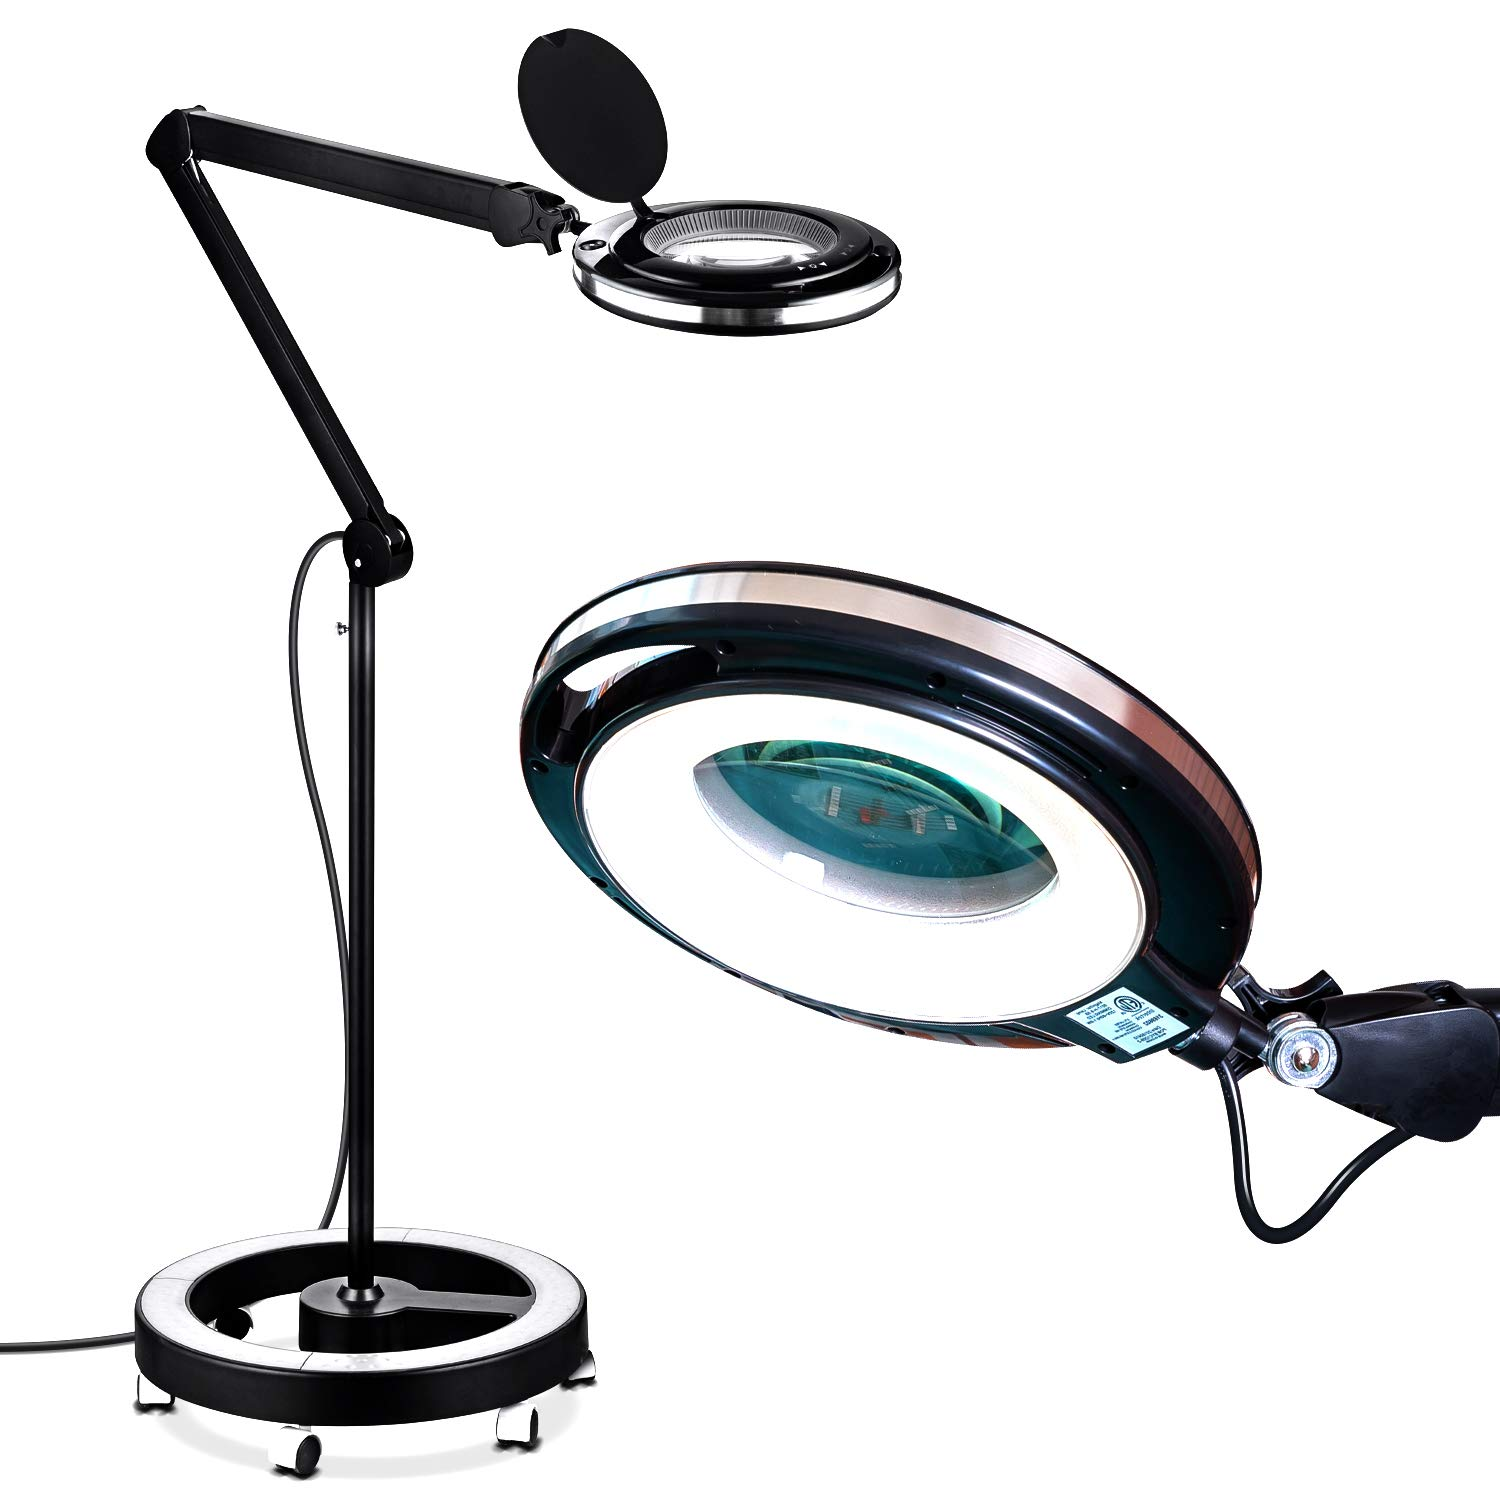 Brightech LightView Pro LED Magnifying Glass Floor Lamp - 5 Diopter Lens - 6 Wheel Rolling Base Reading Magnifier Light with Gooseneck - for Professional Tasks and Crafts -Black by Brightech